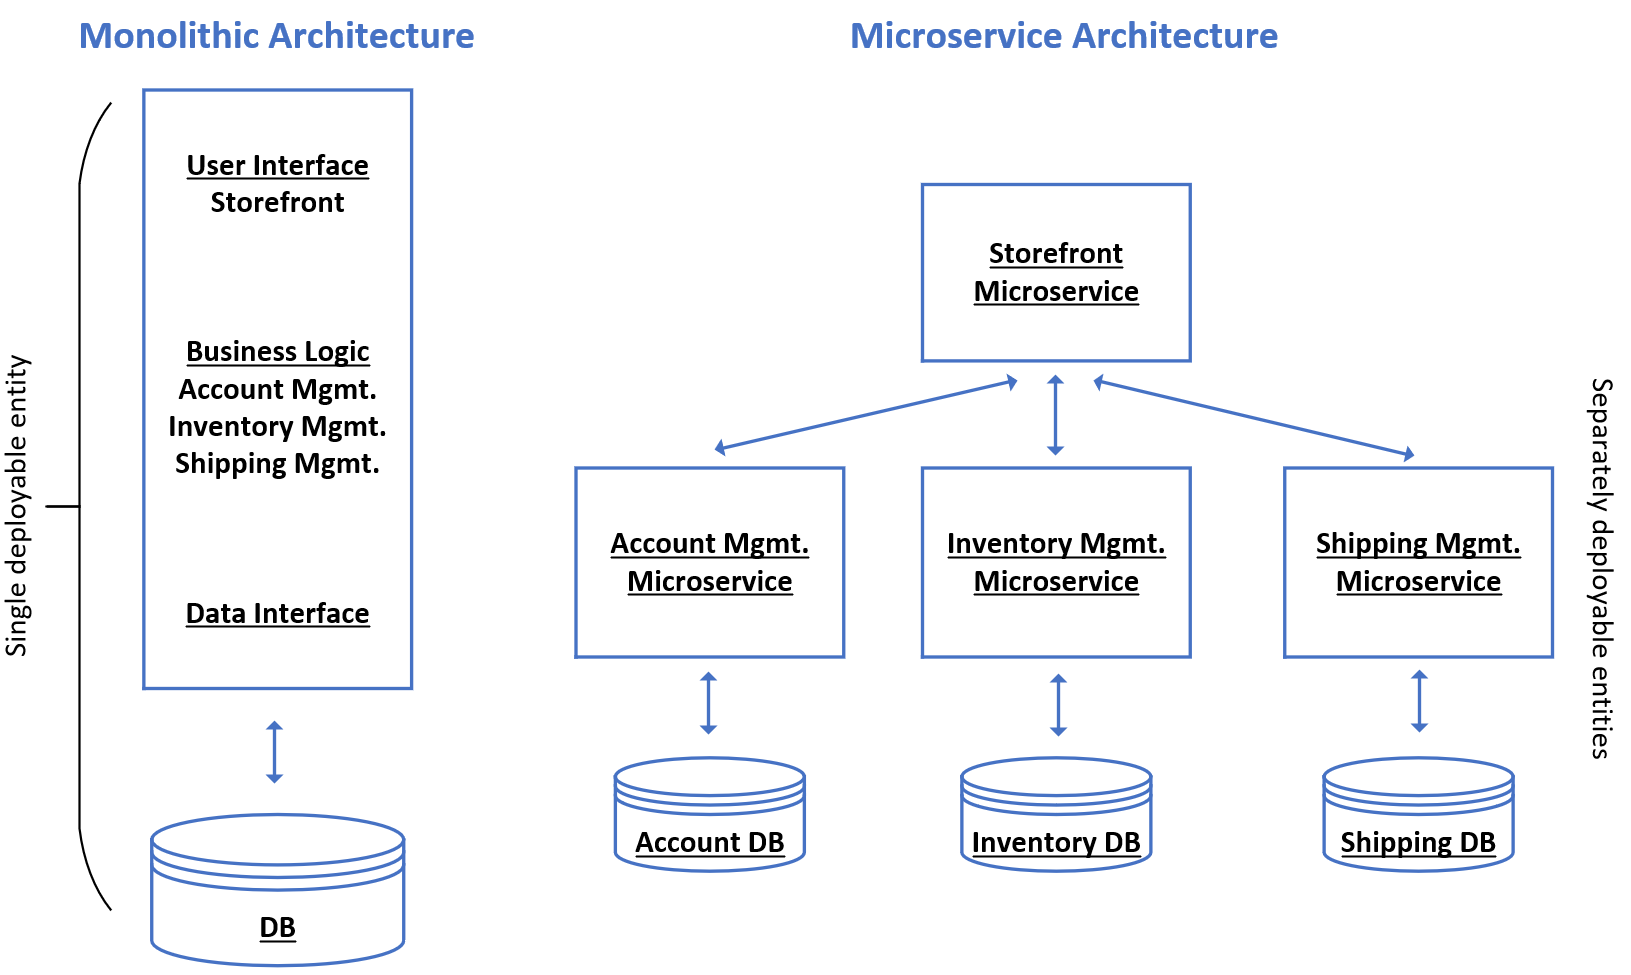 Monolithic solutions versus microservices